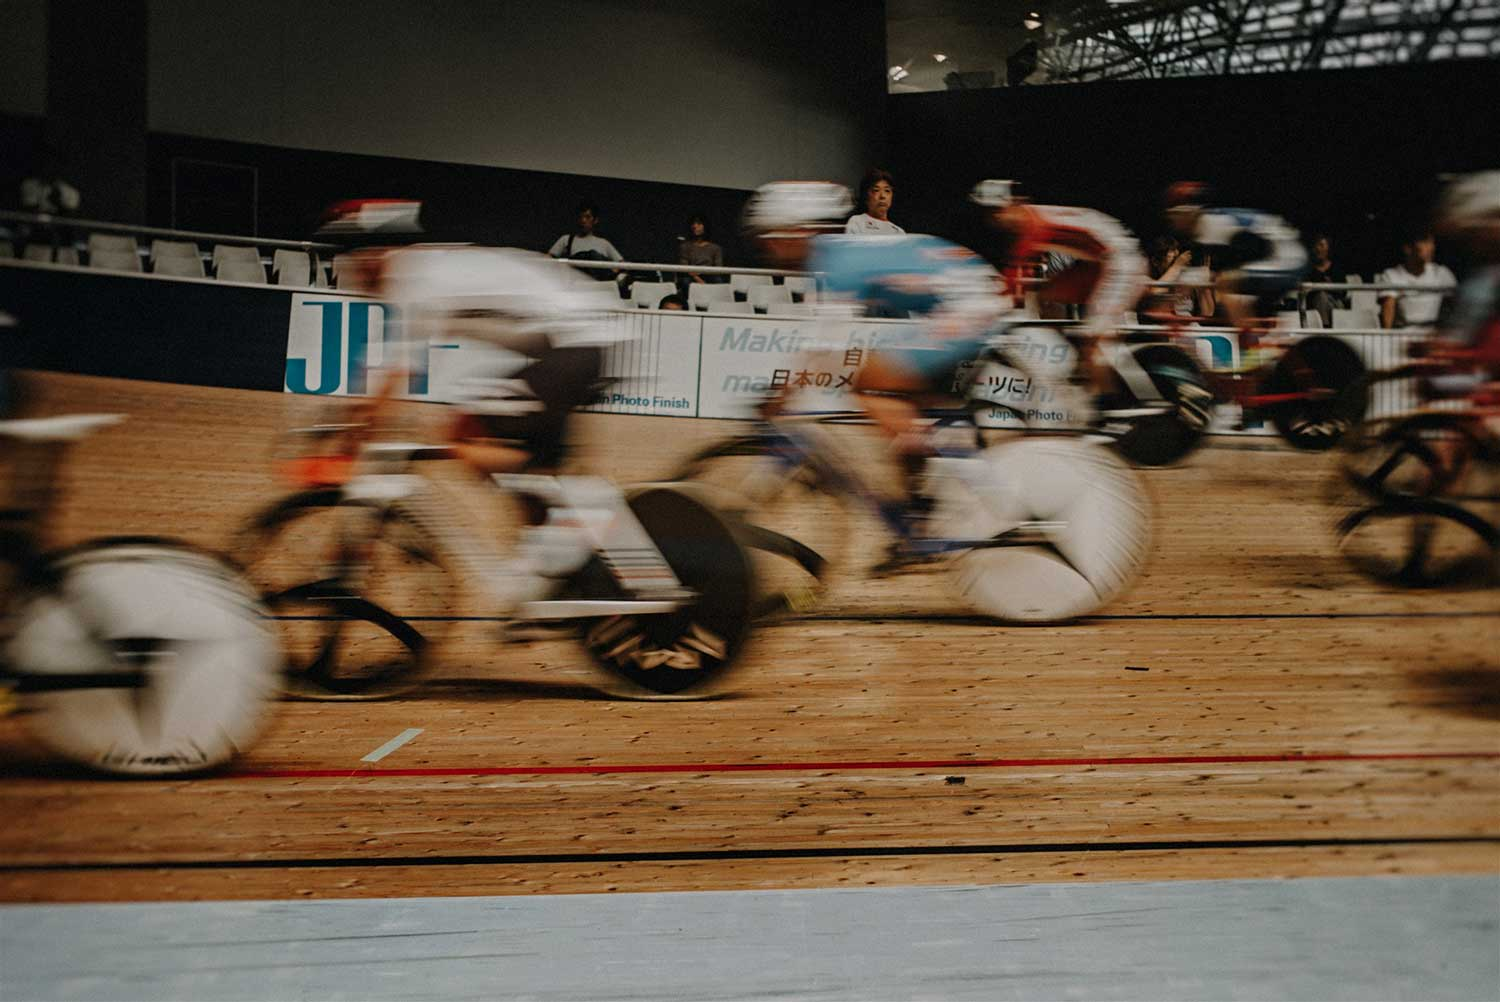 Blurred image of multiple track cyclists during Japan National cycling event at Izu Velodrome